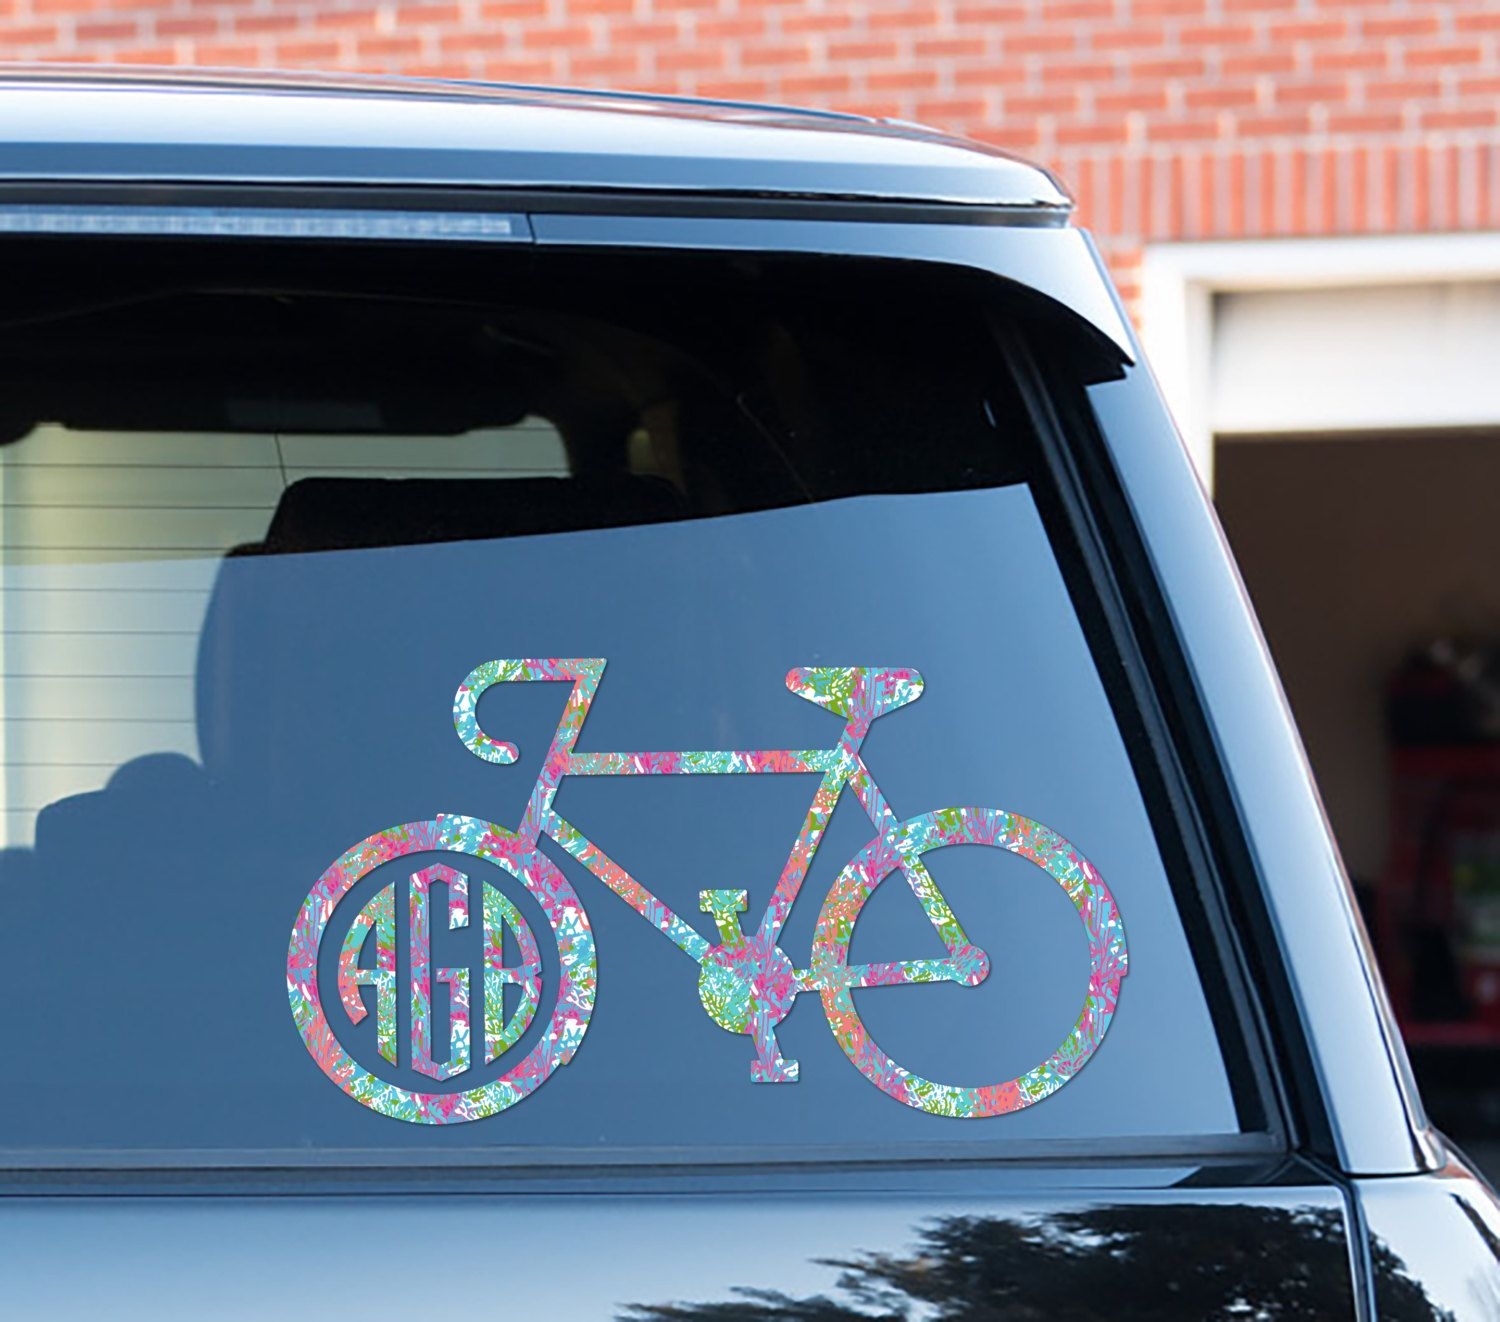 Bike Decal Custom Floral Car Decal Car Stickers Car Decor Cute Car Accessories Lilly Inspired Bicycle Cyclin Cute Car Accessories Cute Cars Sports Vinyl Decals [ 1322 x 1500 Pixel ]